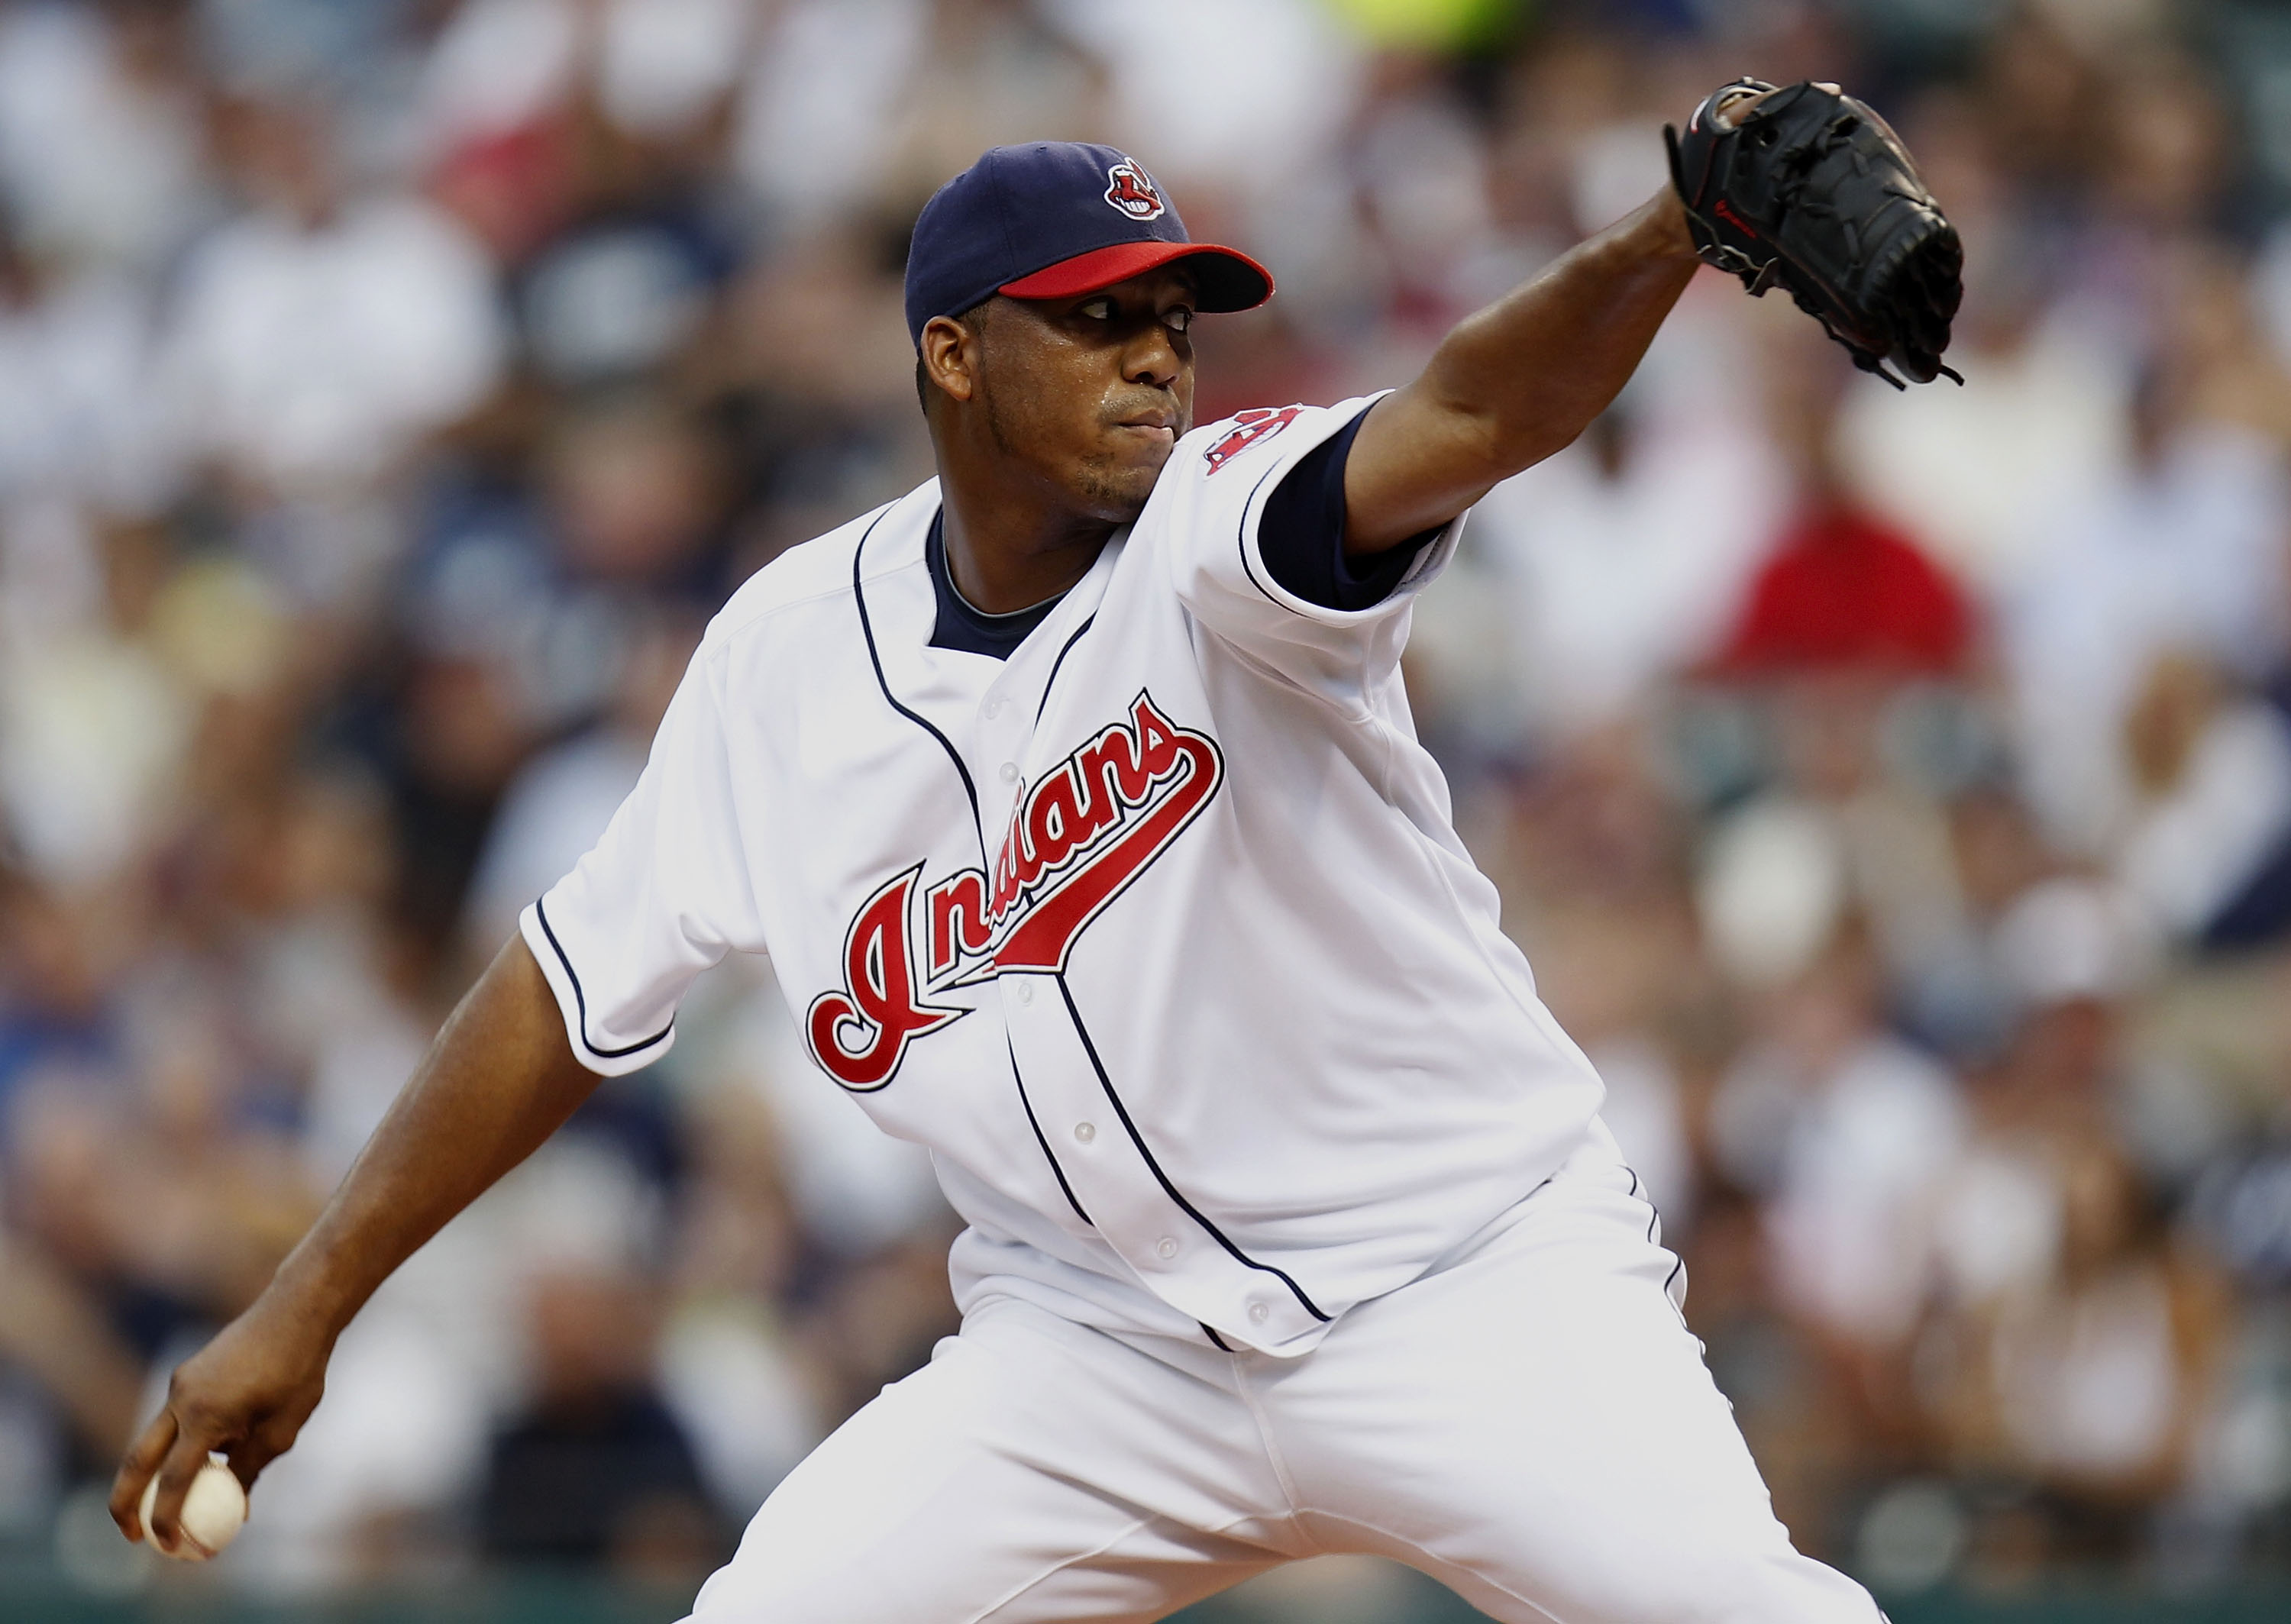 CLEVELAND - JULY 28:  Fausto Carmona #55 of the Cleveland Indians throws a first inning pitch while playing the New York Yankees on July 28, 2010 at Progressive Field in Cleveland, Ohio.  (Photo by Gregory Shamus/Getty Images)